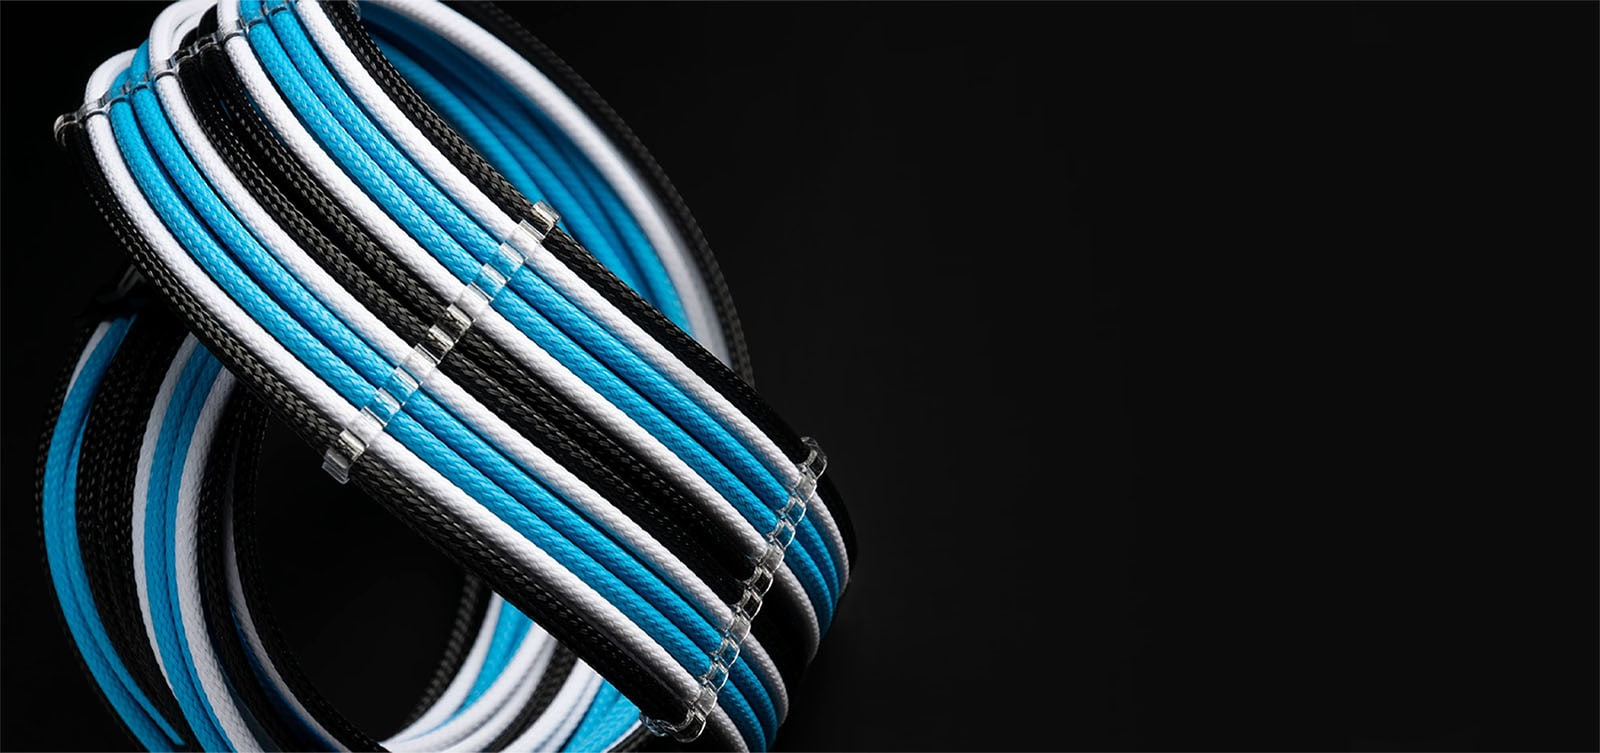 mod-one custom sleeved pc cables bullet points